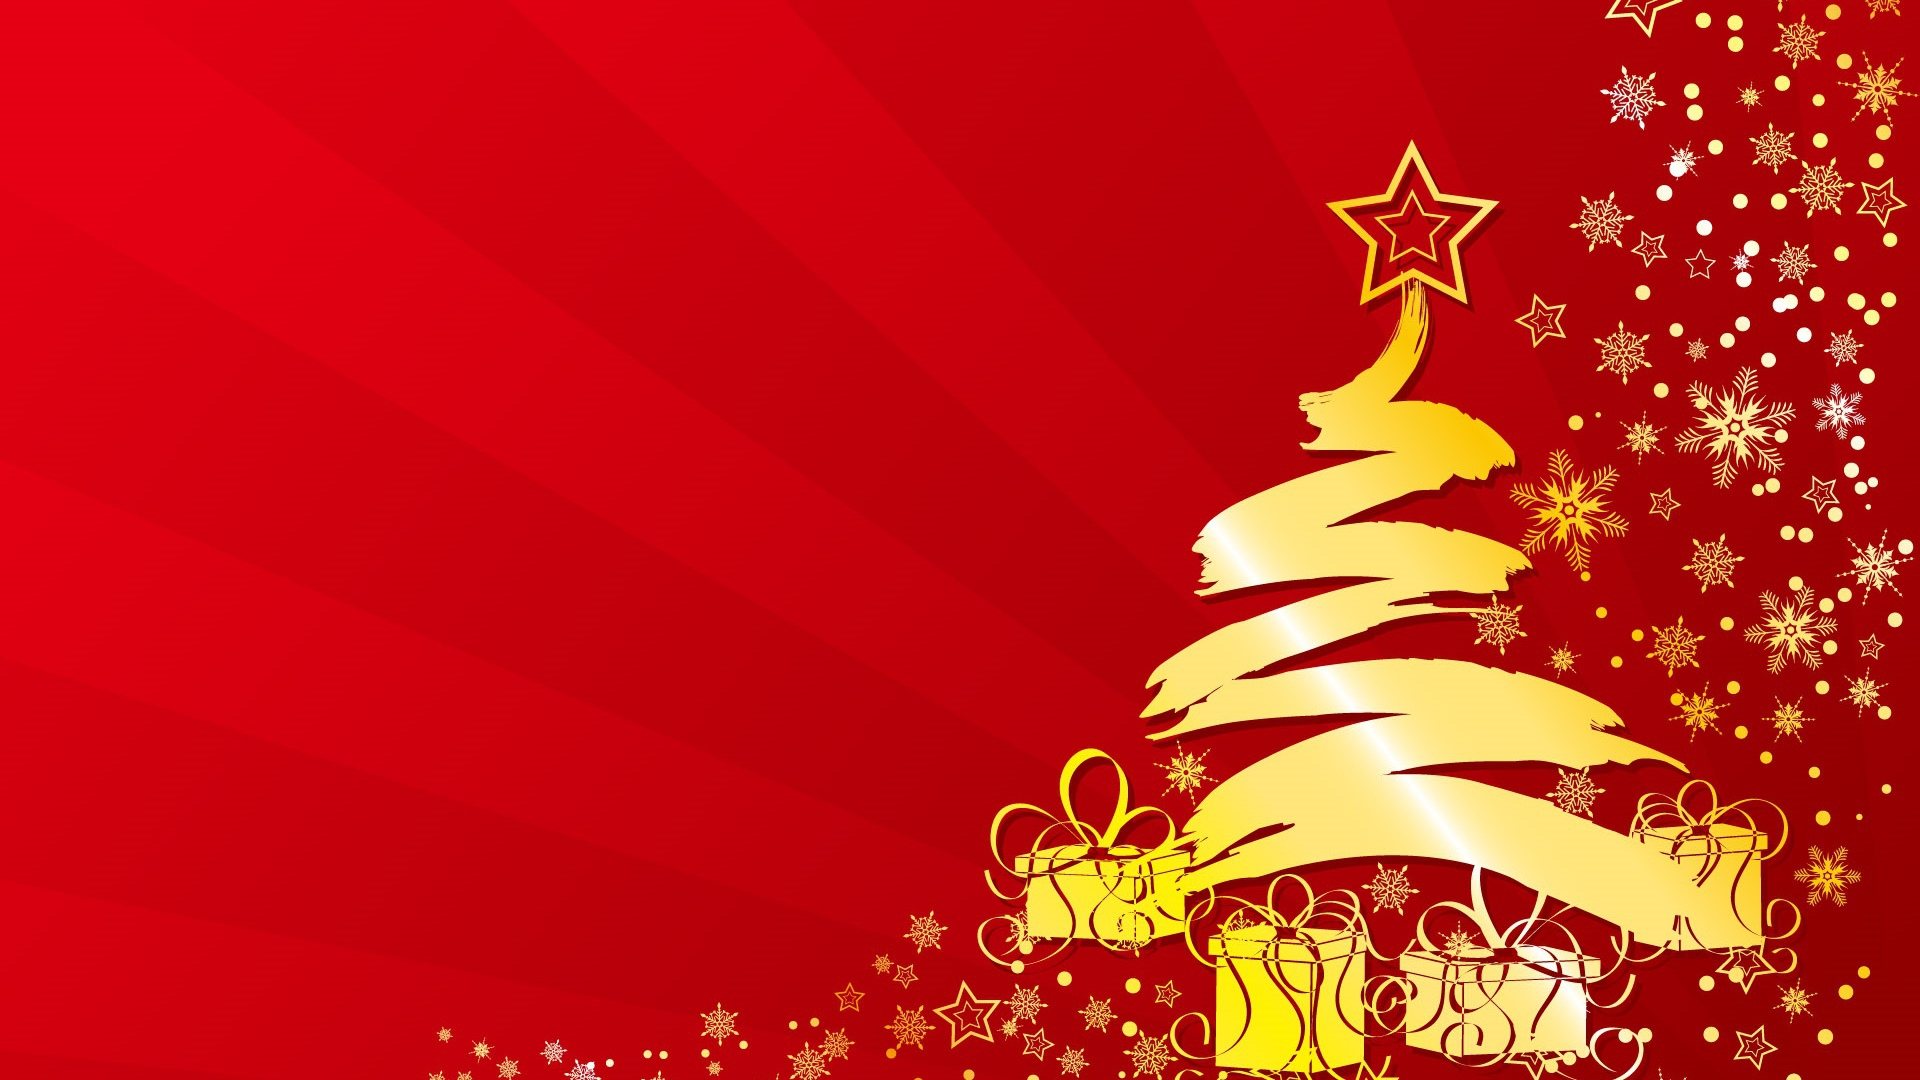 Gold Tree And Presents Red Background Christmas